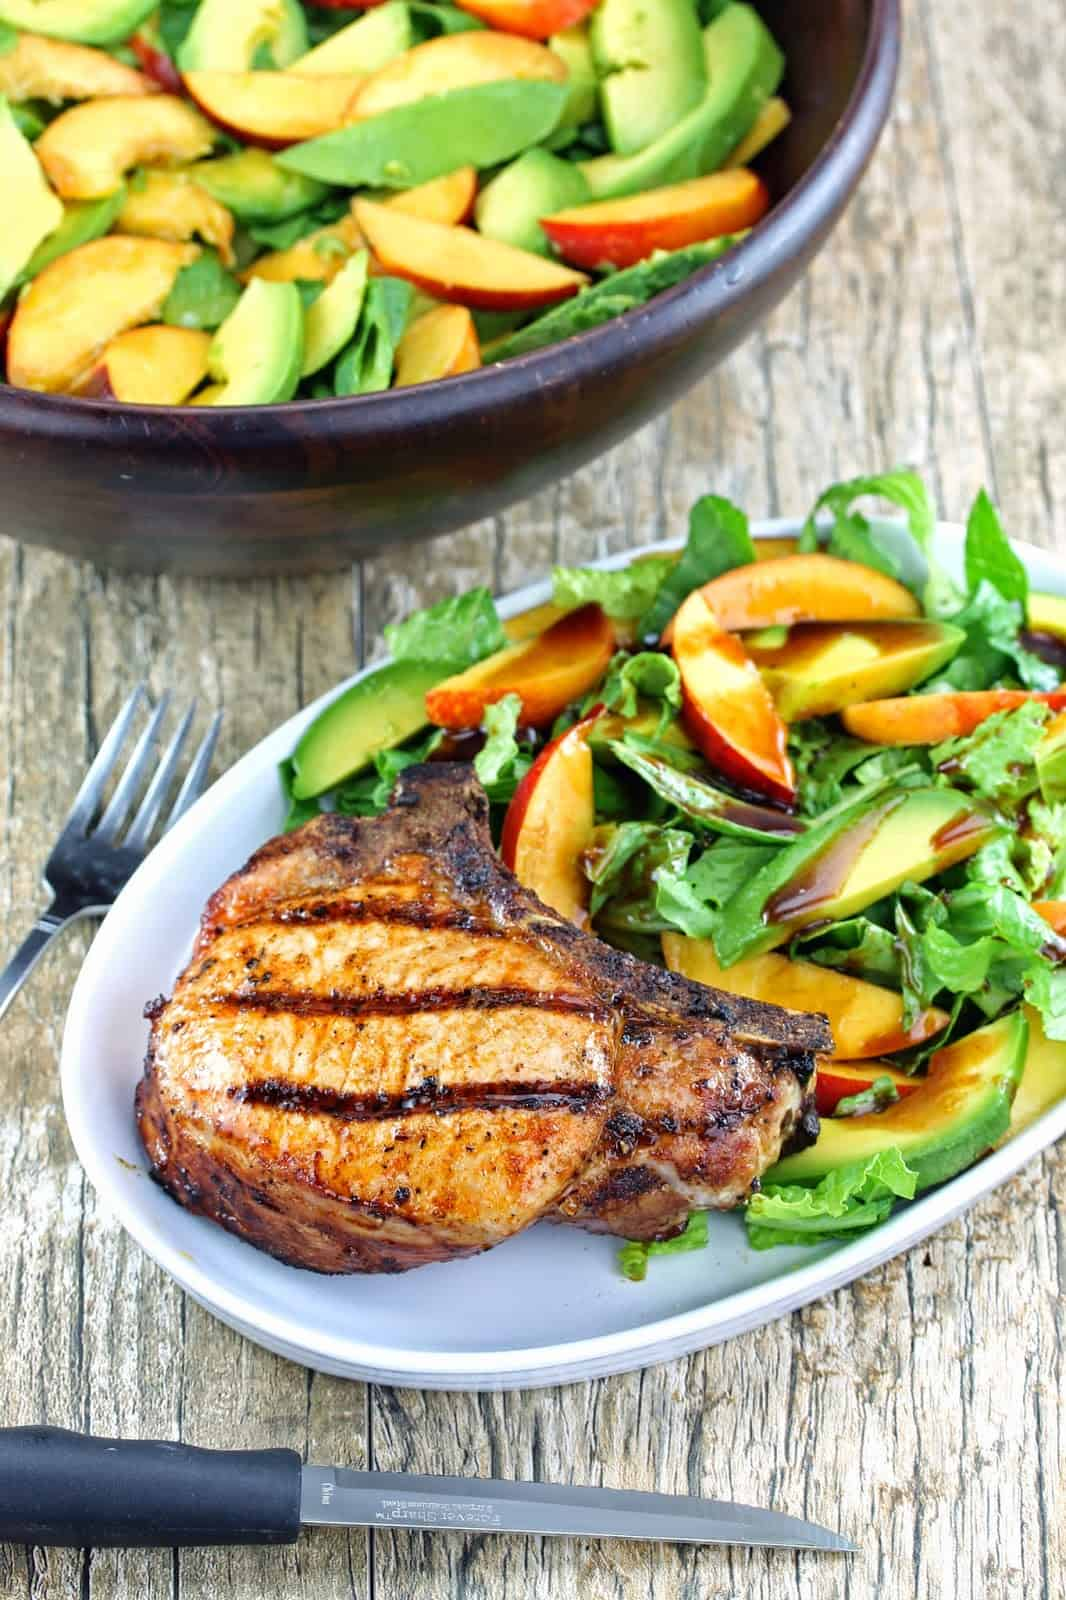 grilled pork chop salad with nectarine and avocado on a white plate